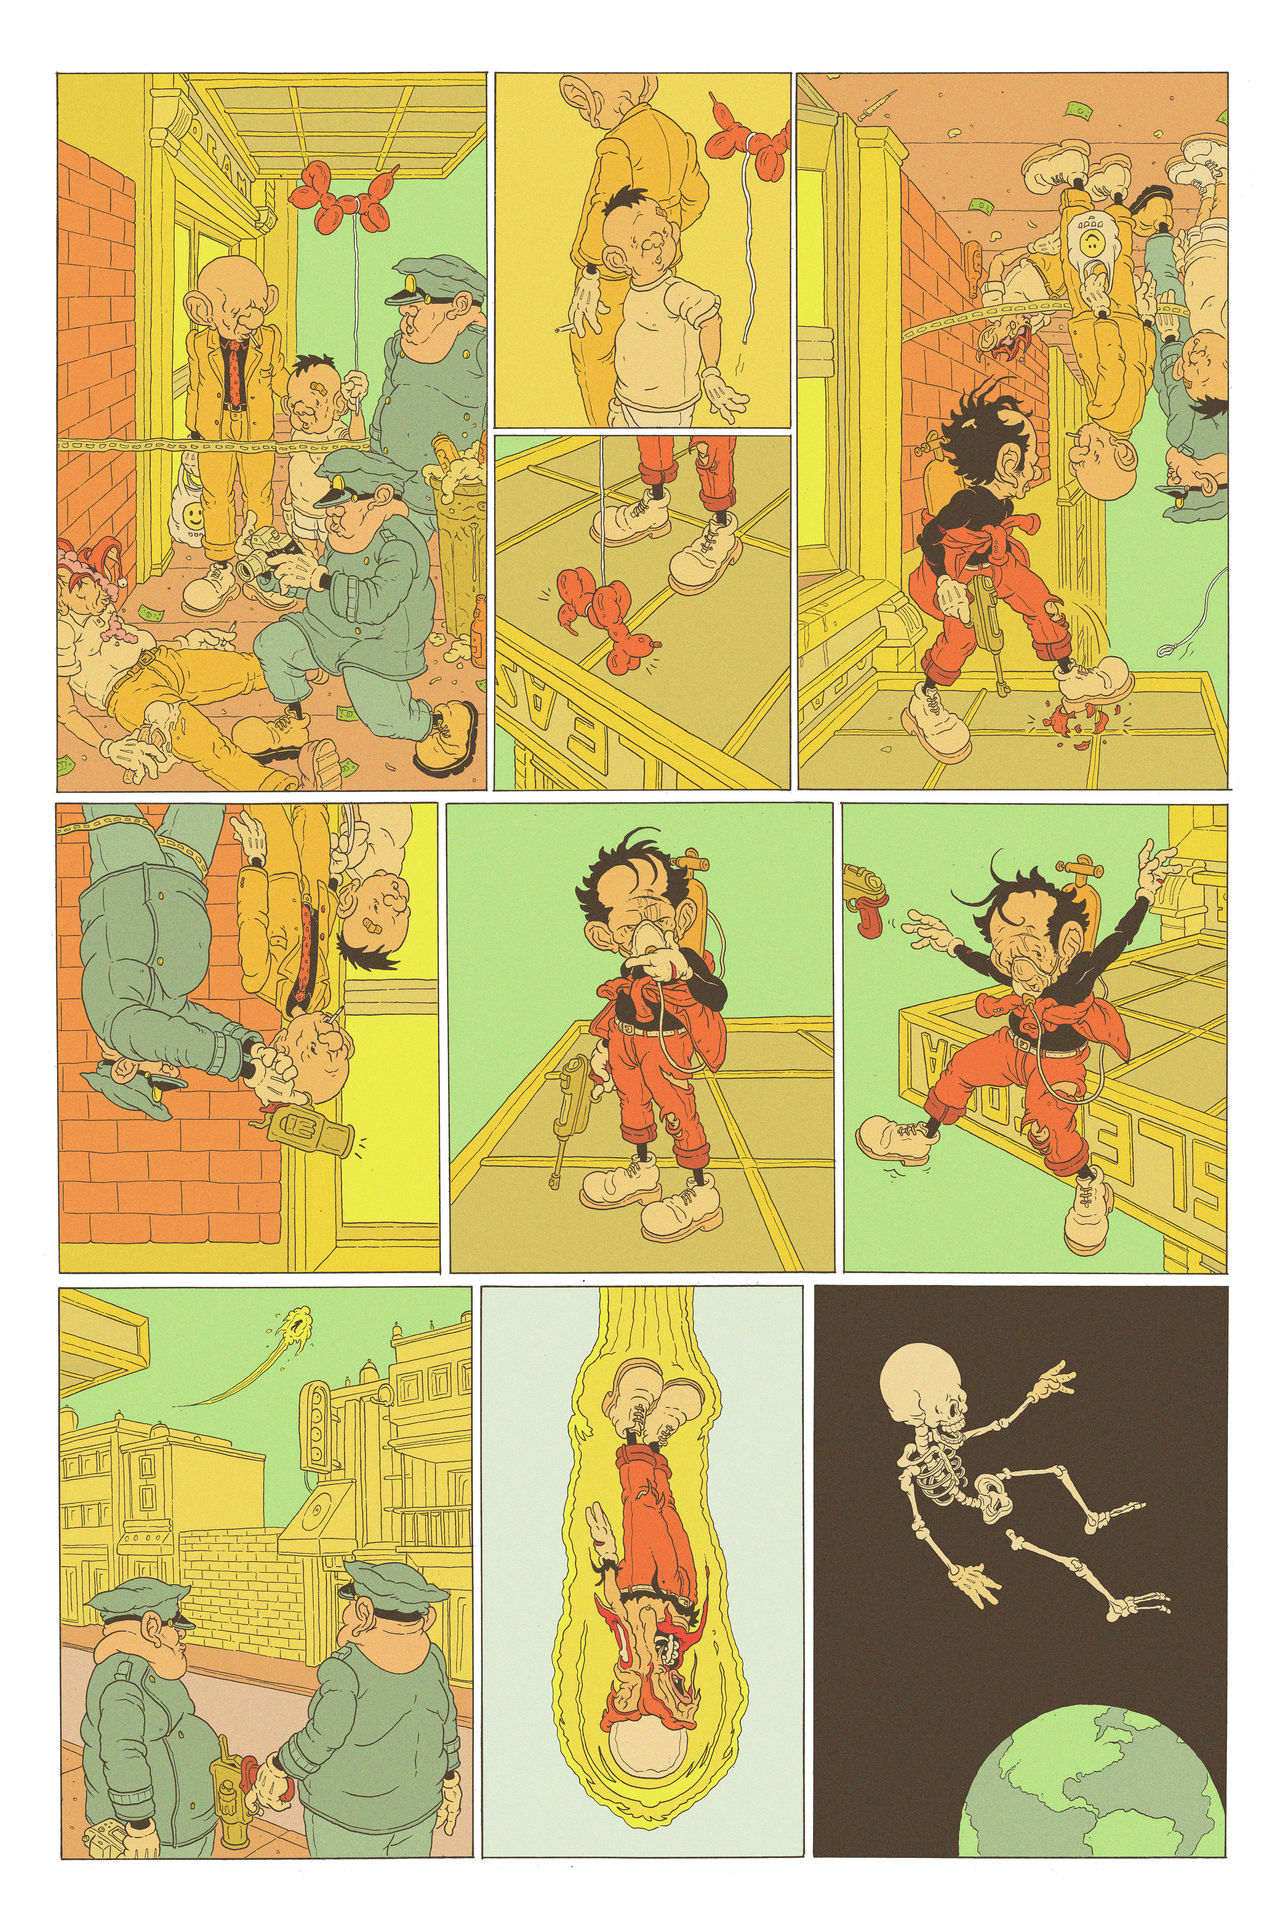 A multi-panelled comic depicting a robber in a red suit and yellow beanie running away from police. His gravity gone, the robber is on the ceiling of a building as the police follow his trail of doom. A helium balloon floats up to where he's standing and he accidentally pops it, drawing attention. He steps away from the ceiling, floating up into the sky and leaves earth's atmosphere, his skin and flesh stripped from his bones in the process.